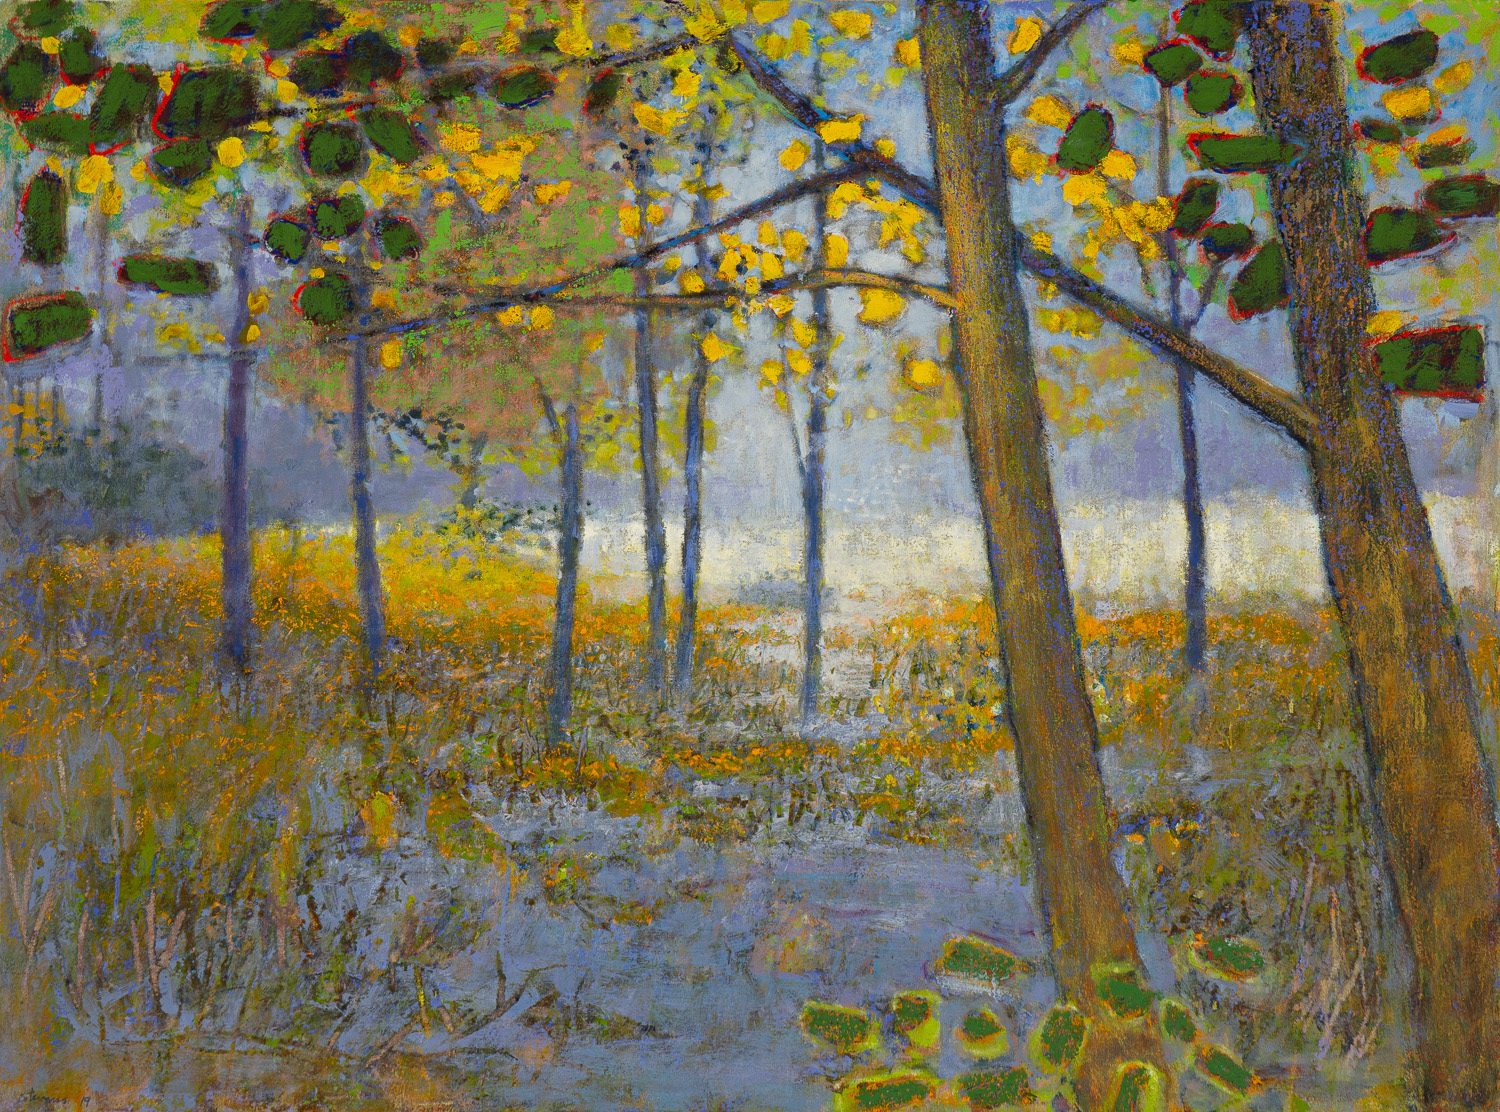 Visitation | oil on canvas | 32 x 43"